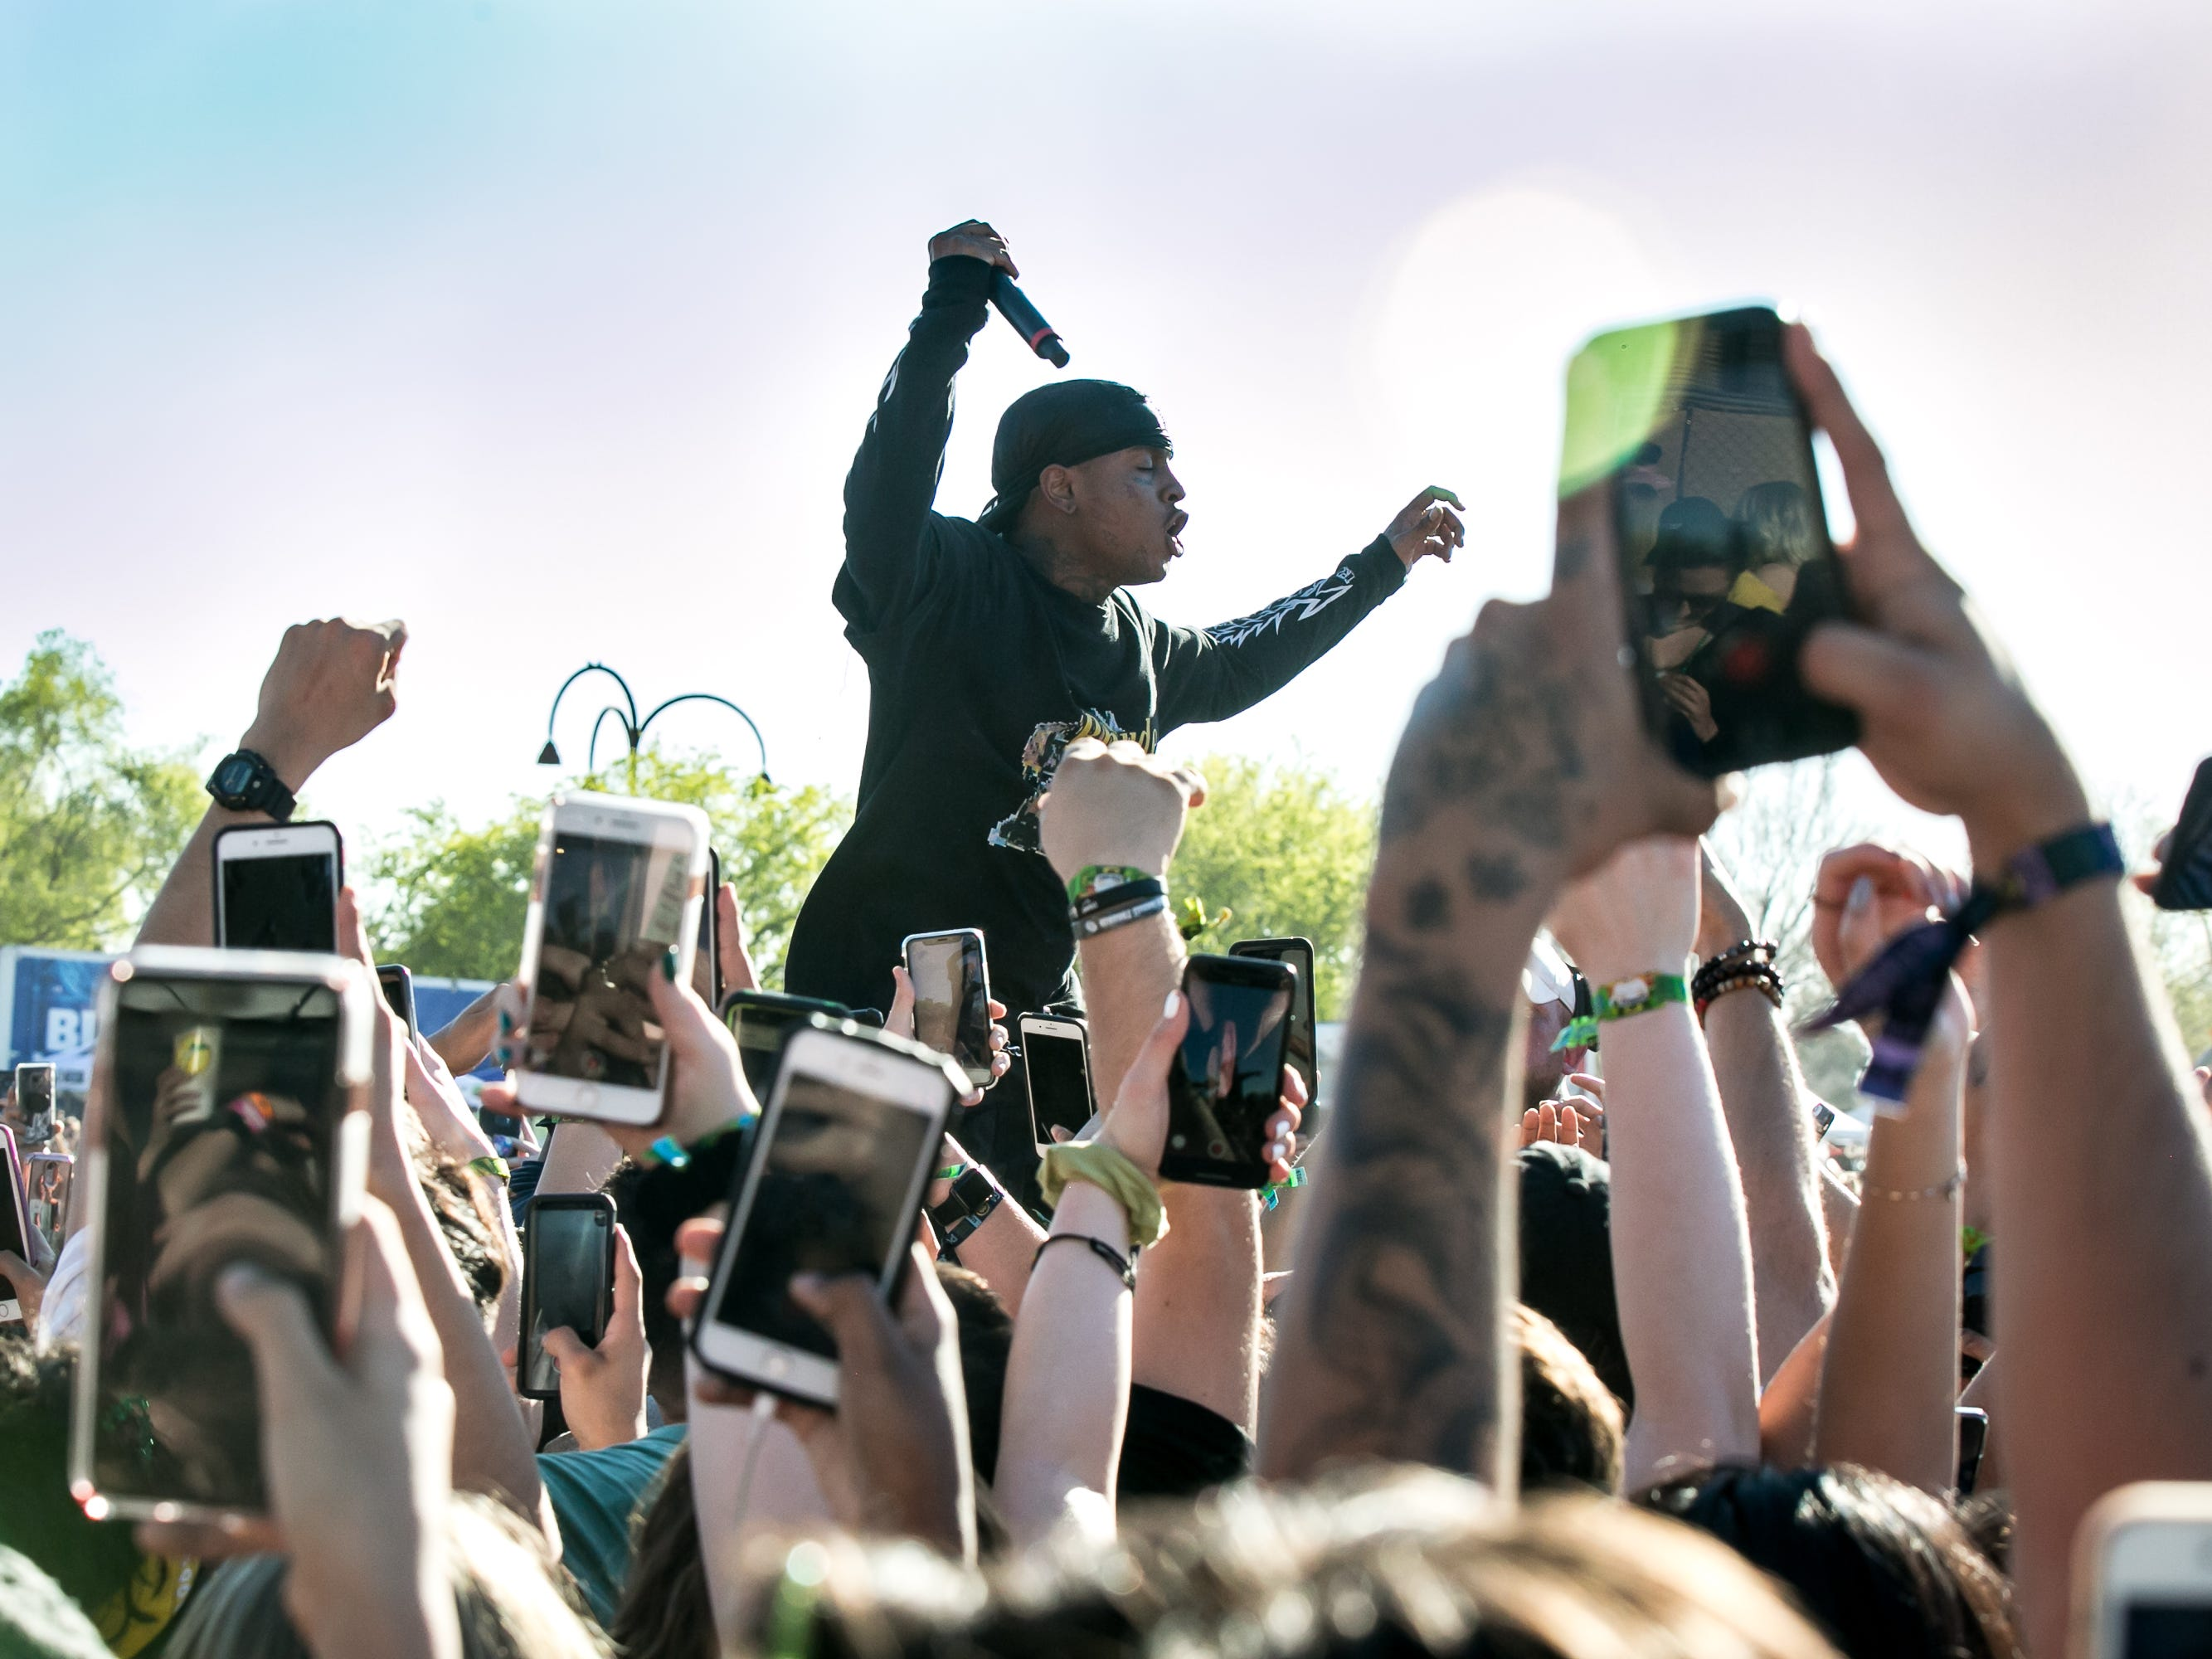 Ski Mask The Slump God performed at Pot of Gold Music Festival on Sunday, March 17, 2019.